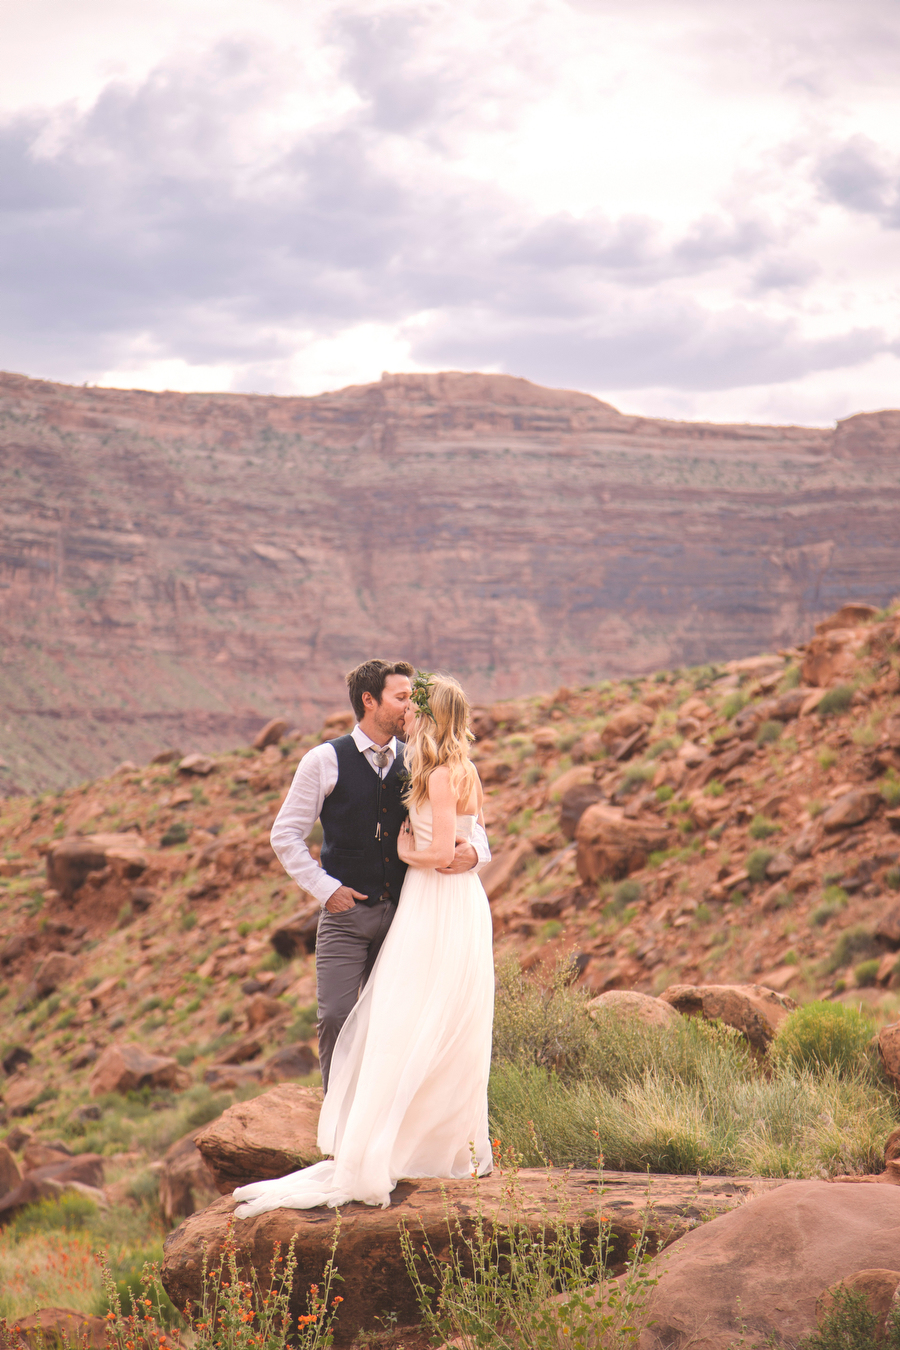 MARIACORONAPHOTOGRAPHY_MOAB_WEDDING_083.JPG